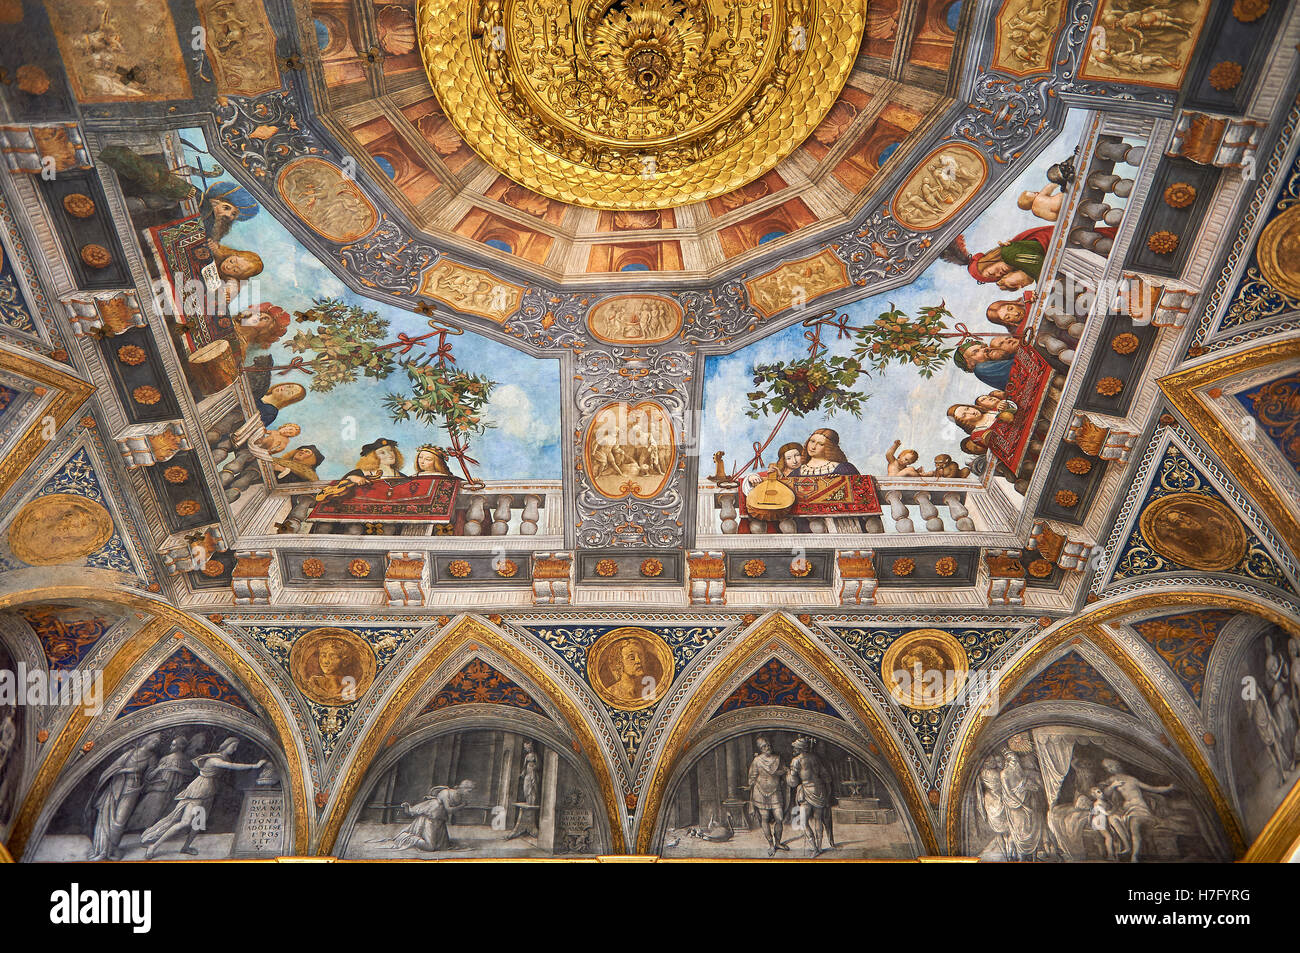 Renaissance ceiling paintings by Benevento Tisi also known as il Garofalo, of the Ferrara Renaissance school of - Stock Image